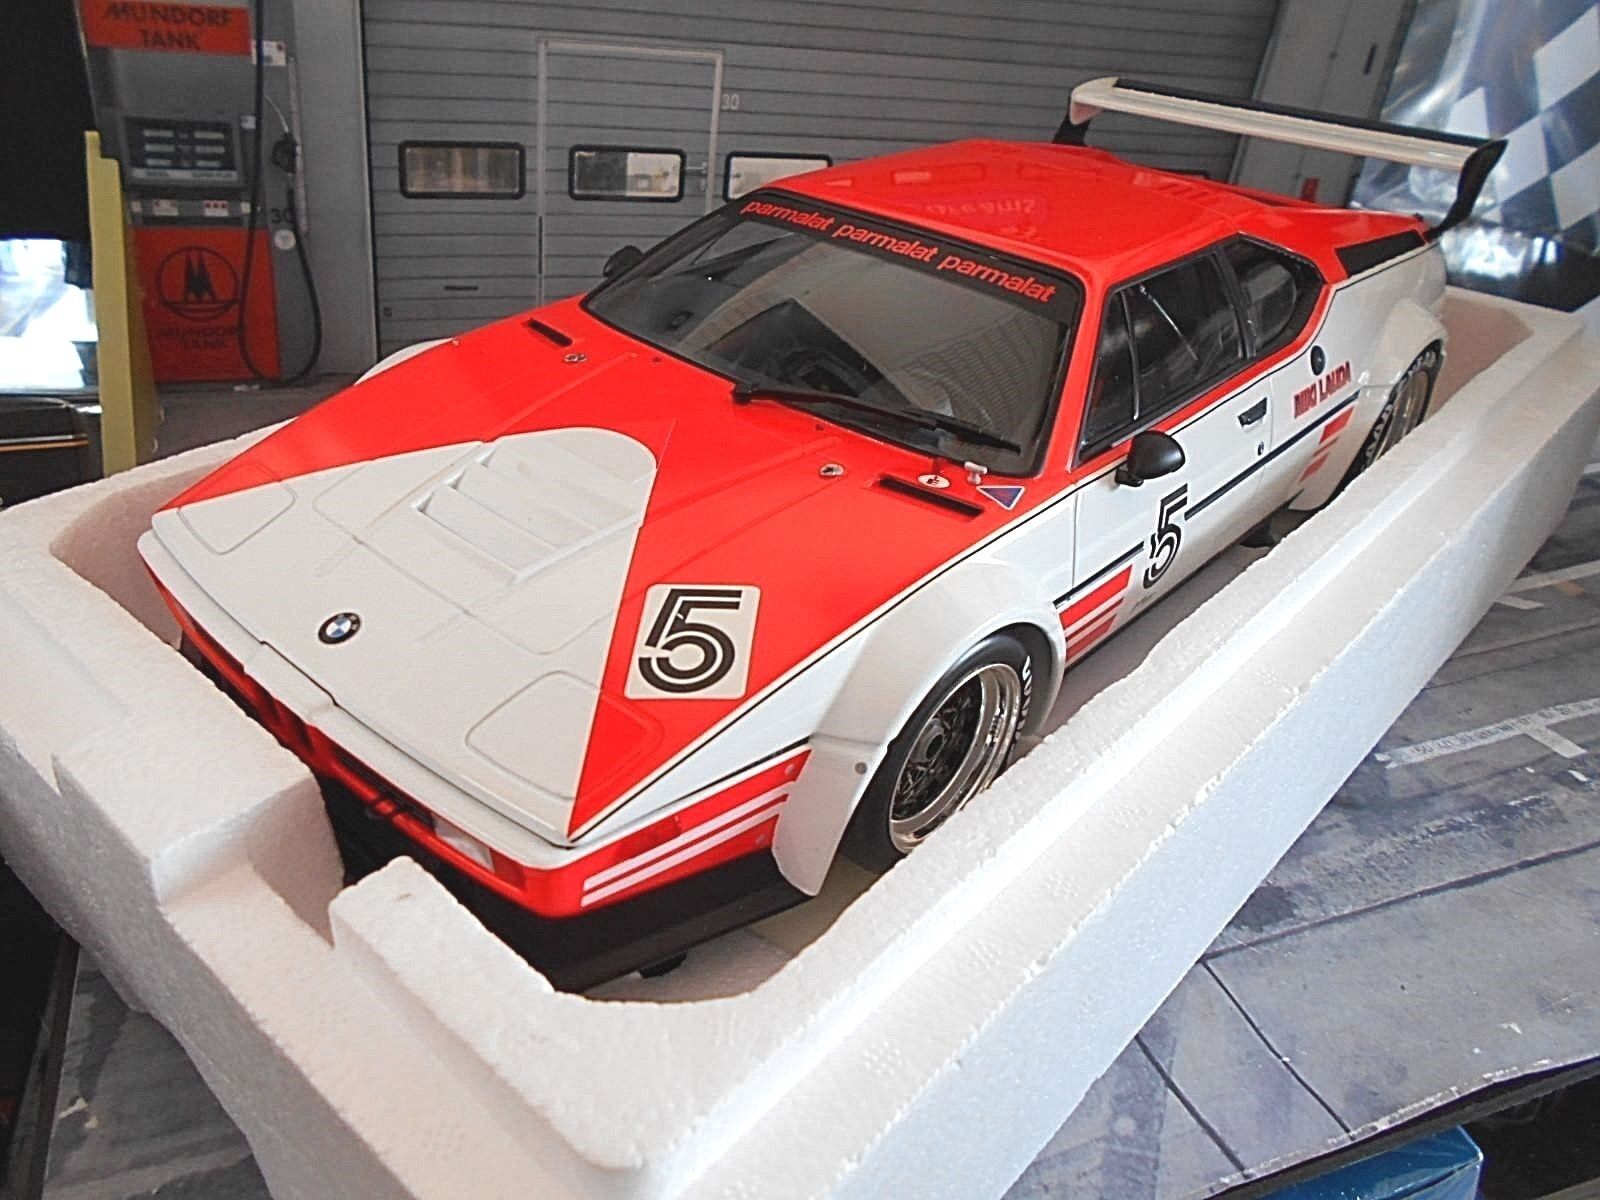 BMW m1 RACING PROCAR Lauda  5 Marl 1979 Procar Series Minichamps Nuovo enorme 1:12